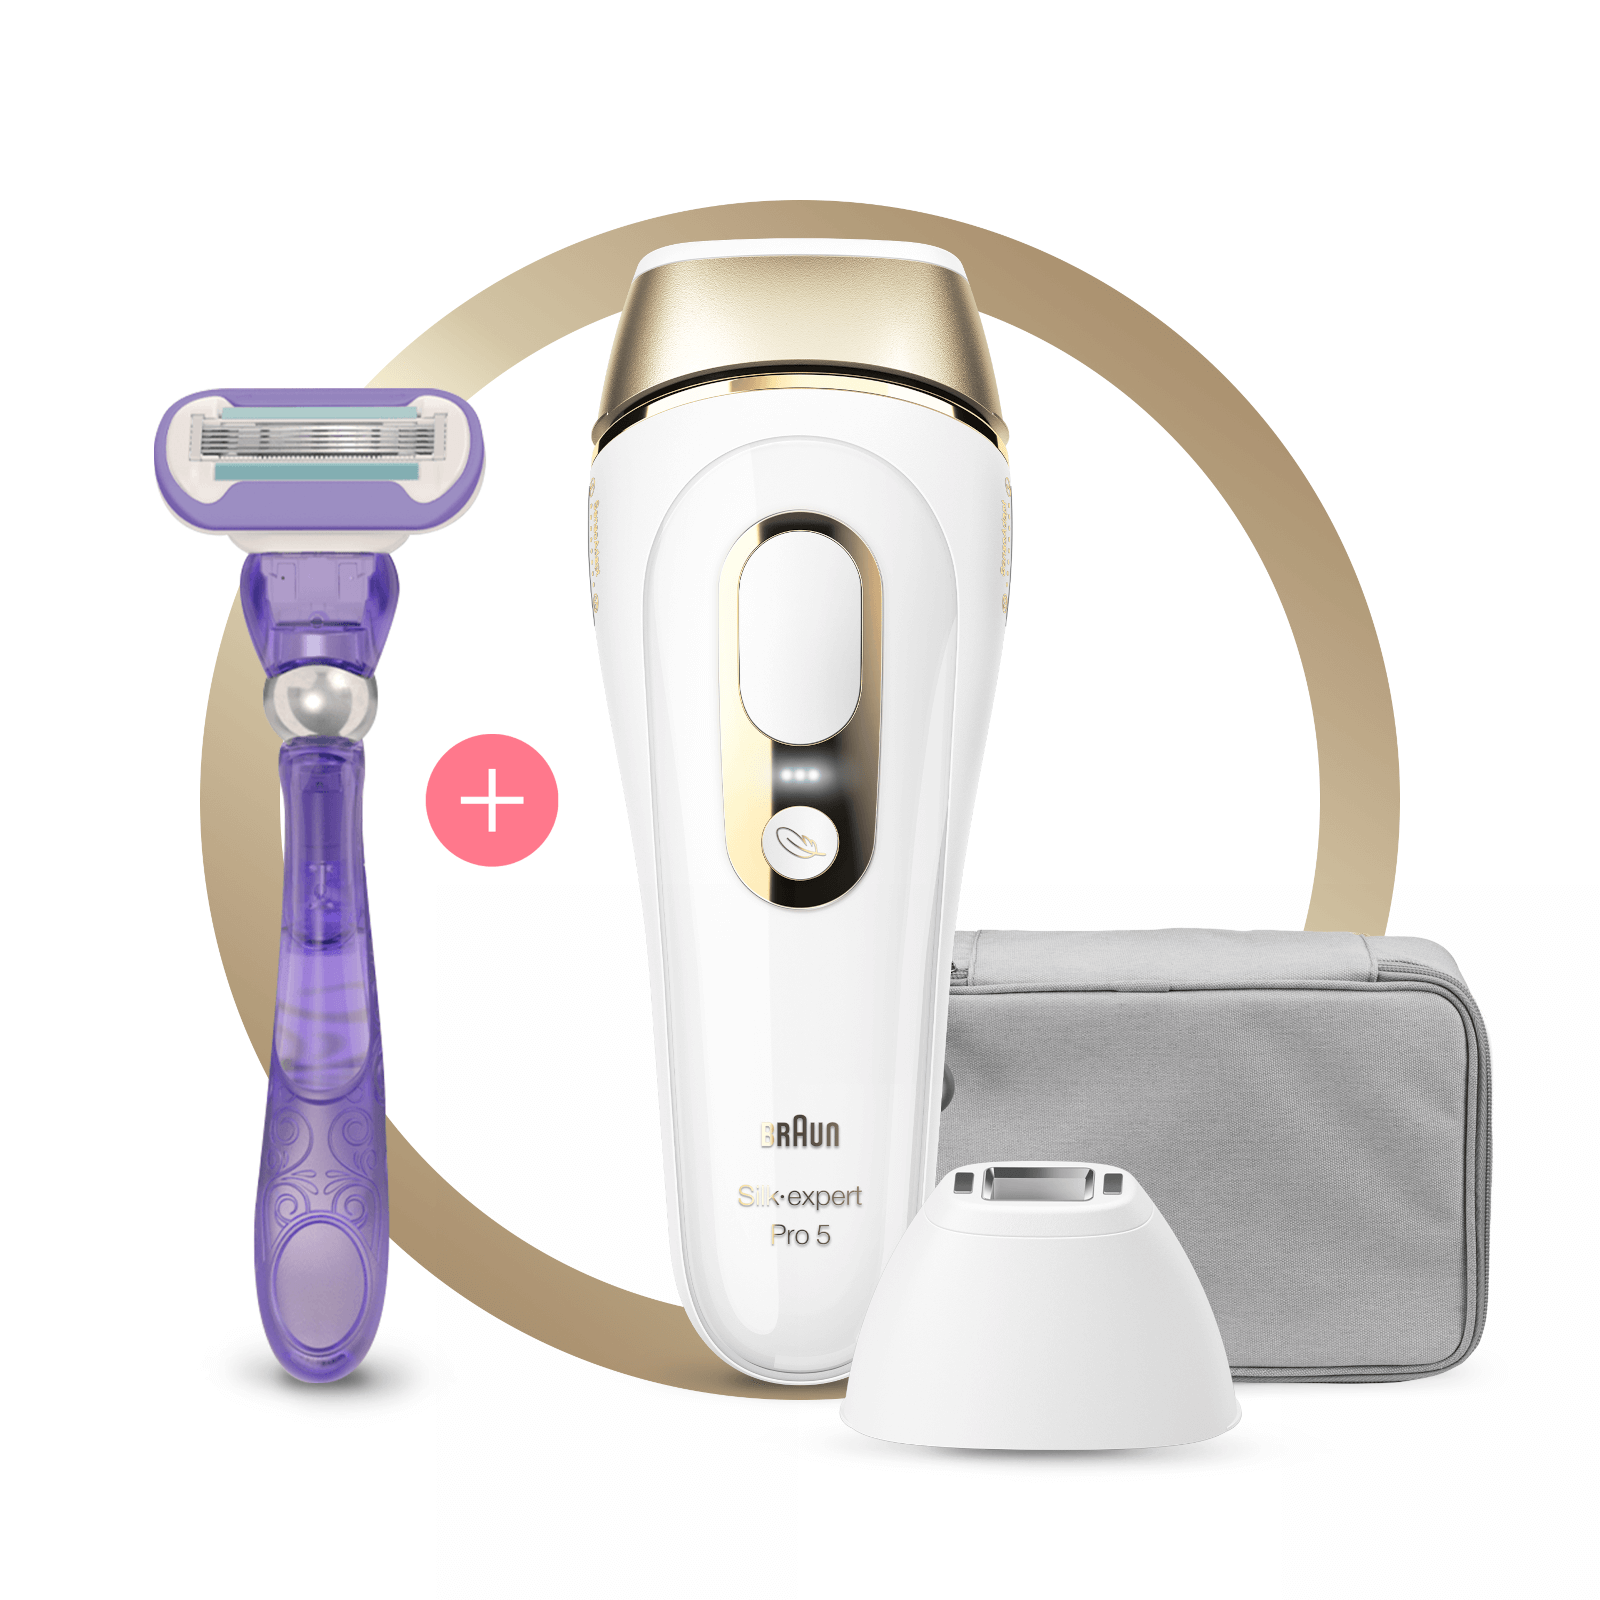 Silk-expert Pro 5 IPL with Precision Head, Razor and Pouch